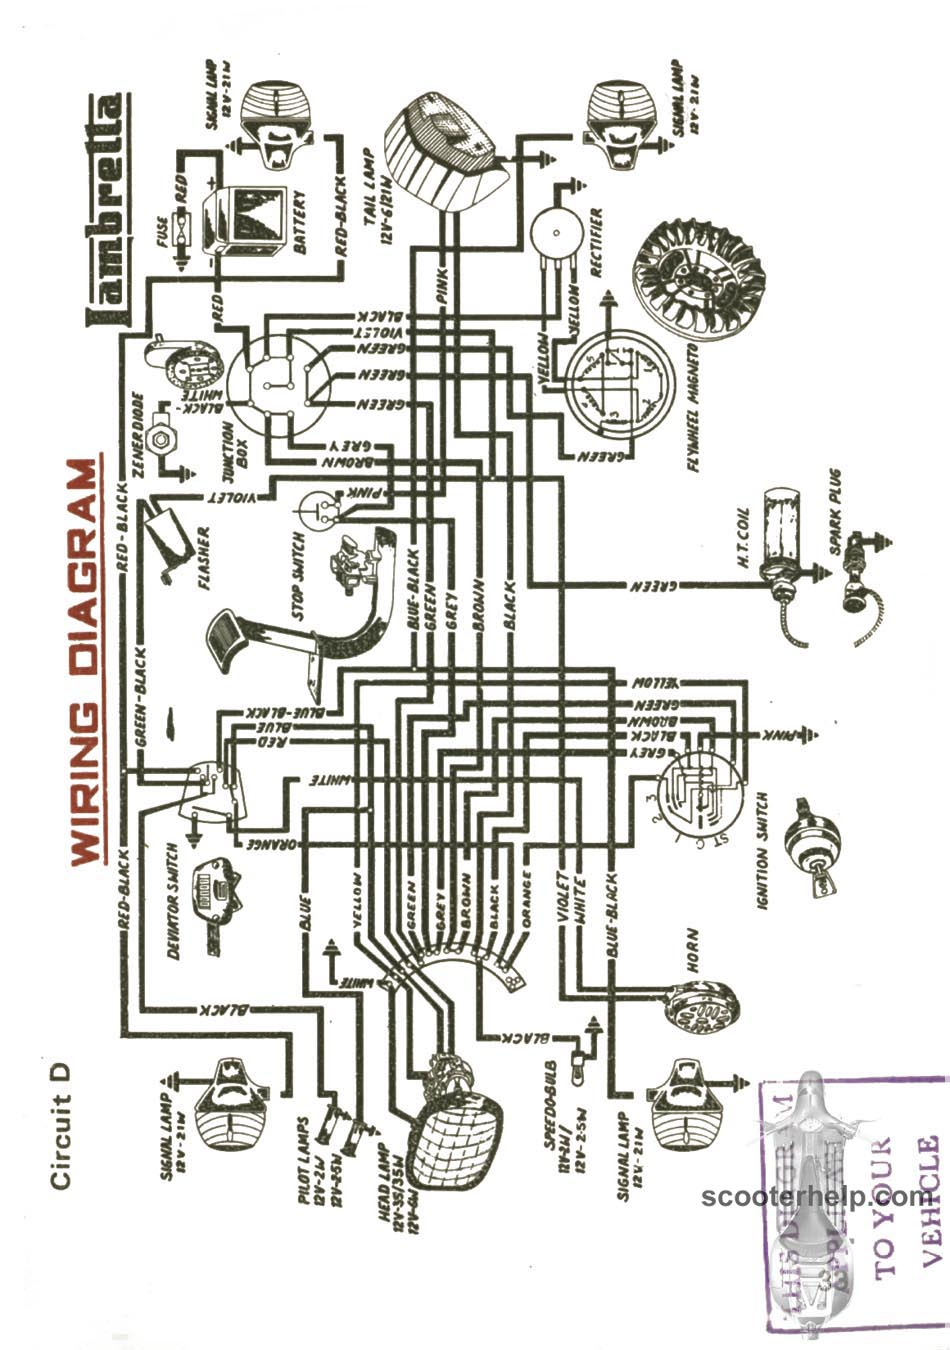 Vespa Wiring Diagram 1956 25 Images Razor 650 Electric Page33 Sil Lambretta Dl 200 Owners Manual Scooter Diagrams At